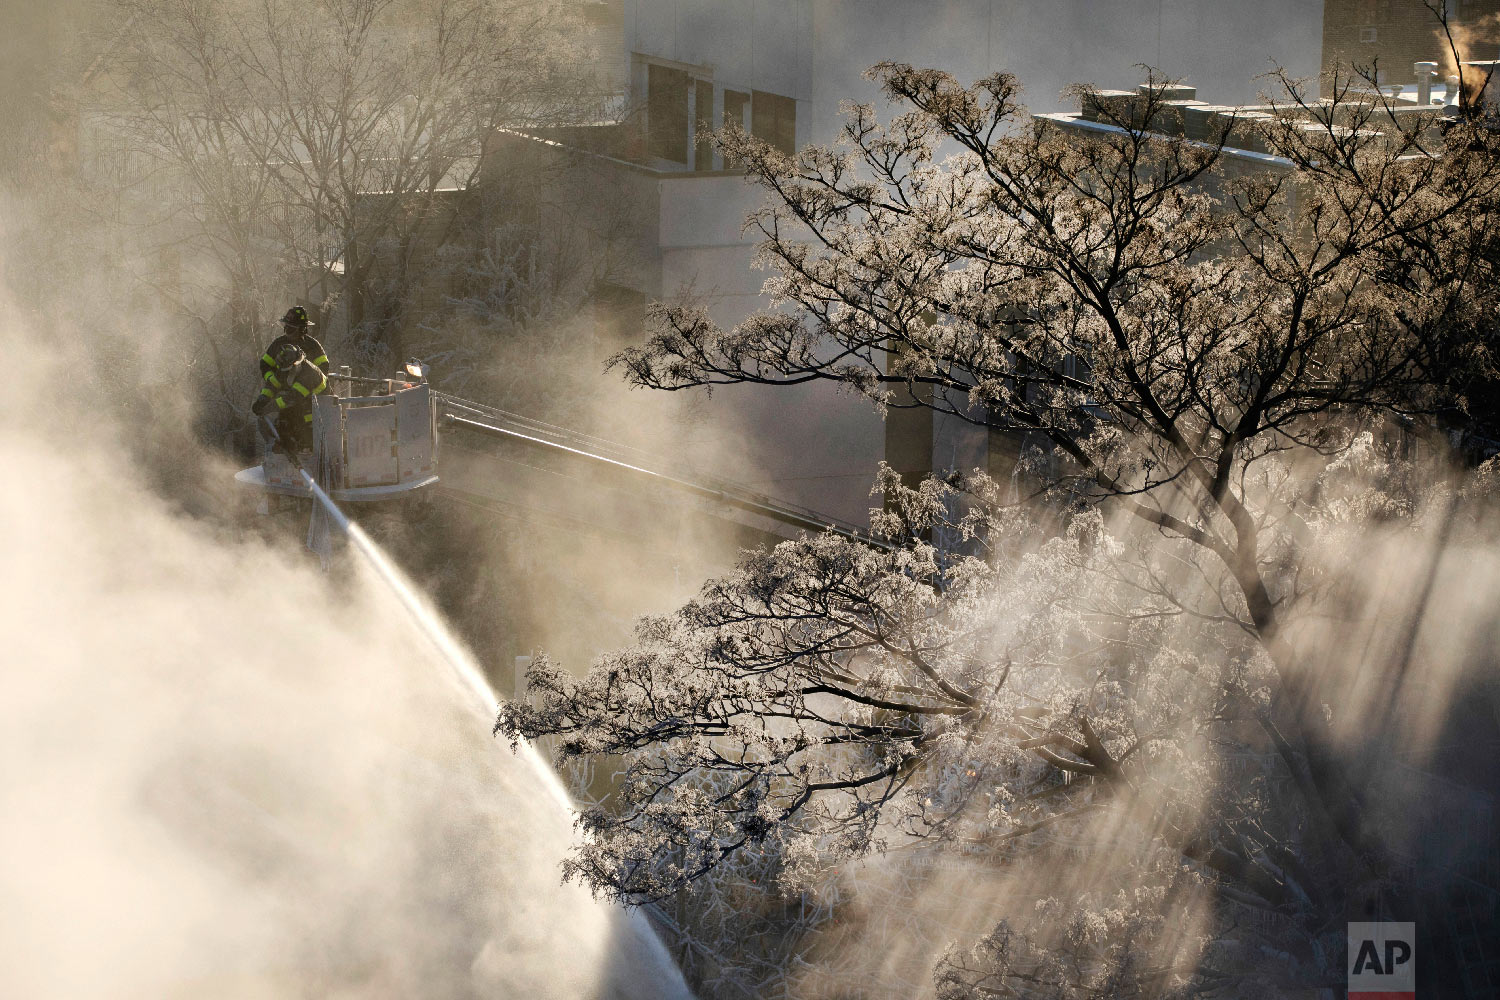 Ice forms on tree branches as New York firefighters battle a blaze in a commercial building in the Bedford Stuyvesant neighborhood of Brooklyn, Thursday, Jan. 31, 2019 in New York. (AP Photo/Mark Lennihan)